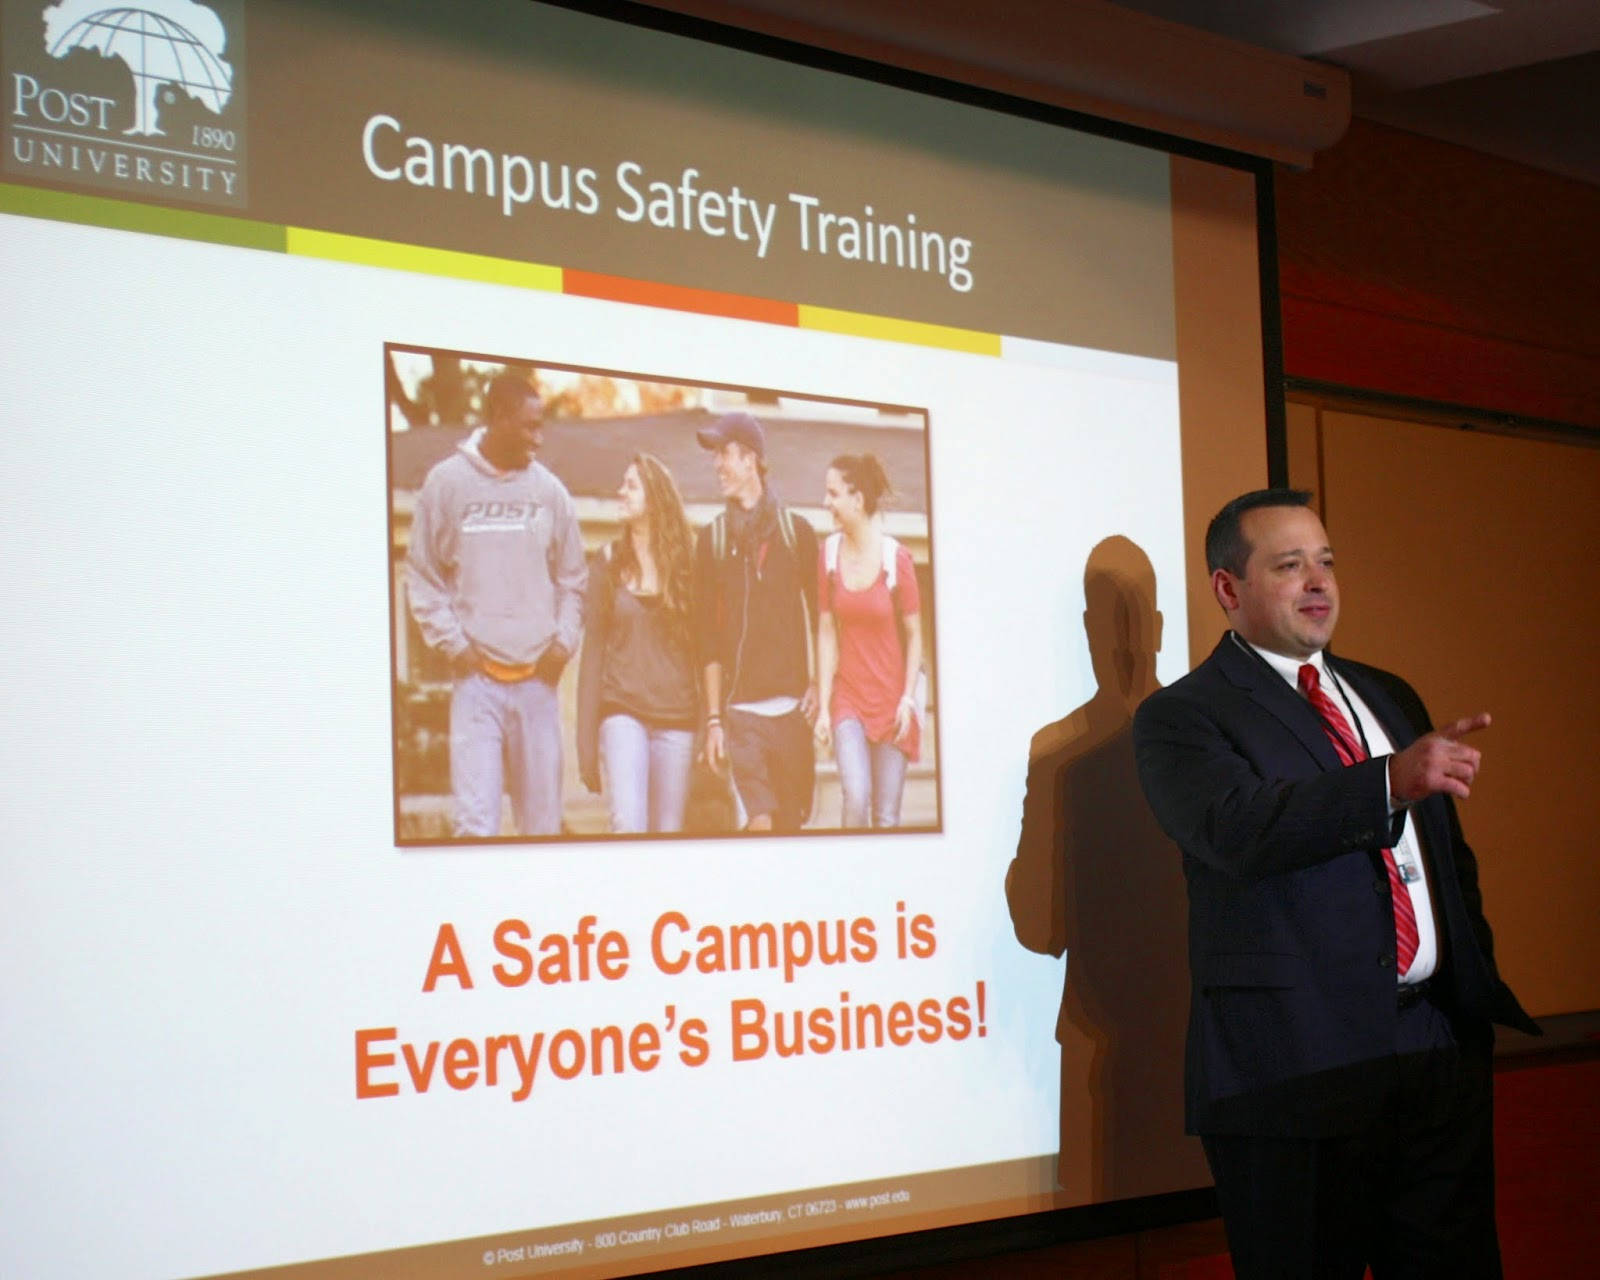 David Jannetty conducting Campus Student Safety Training at Post University